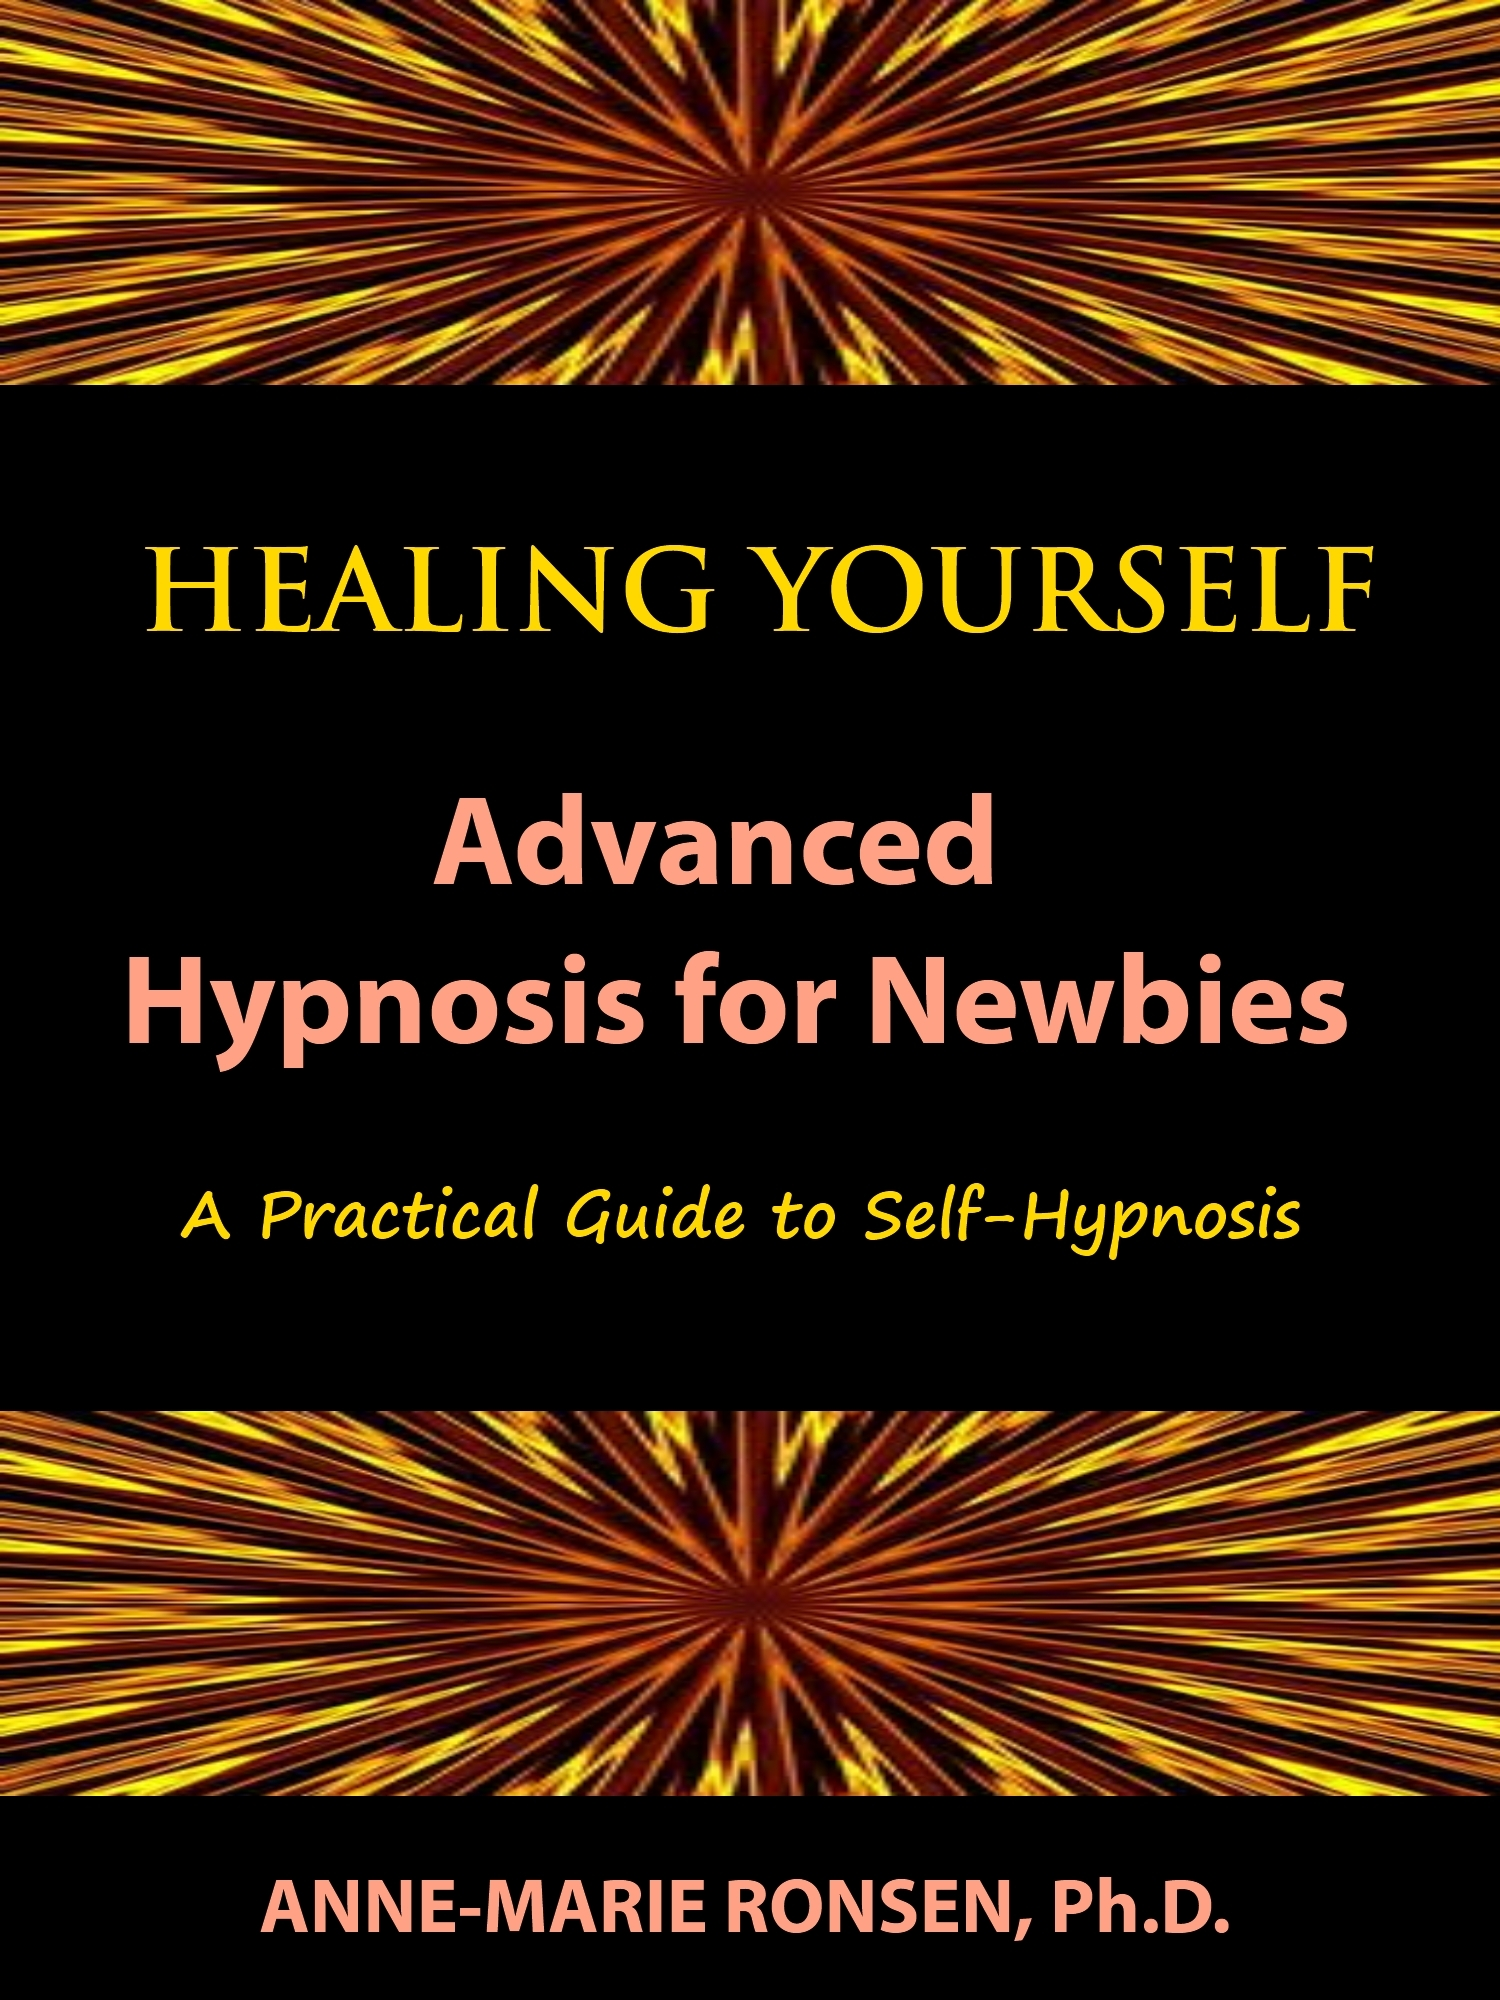 Healing Yourself: Advanced Hypnosis for Newbies